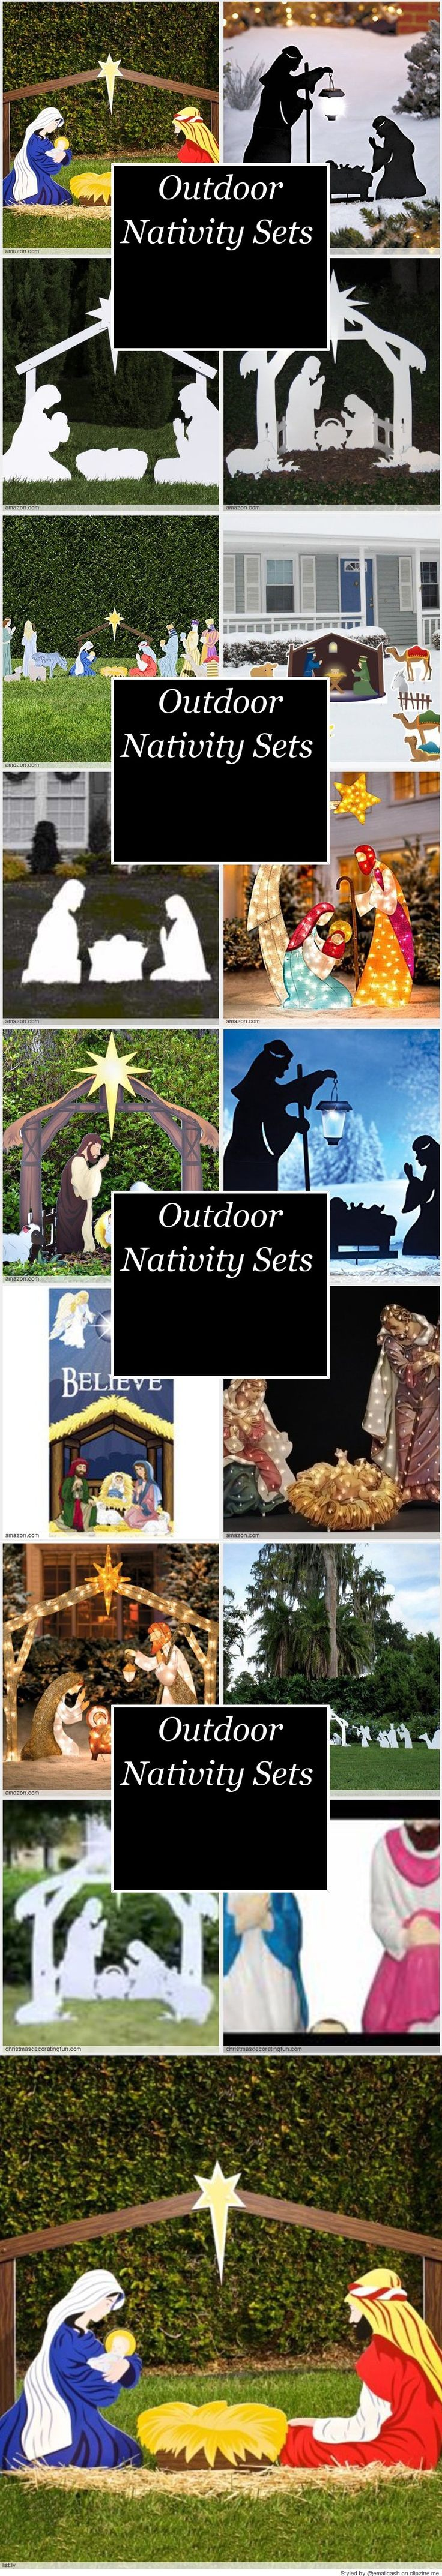 Outdoor Nativity Sets - Outdoor Nativity Sets really add a lot to your outside…